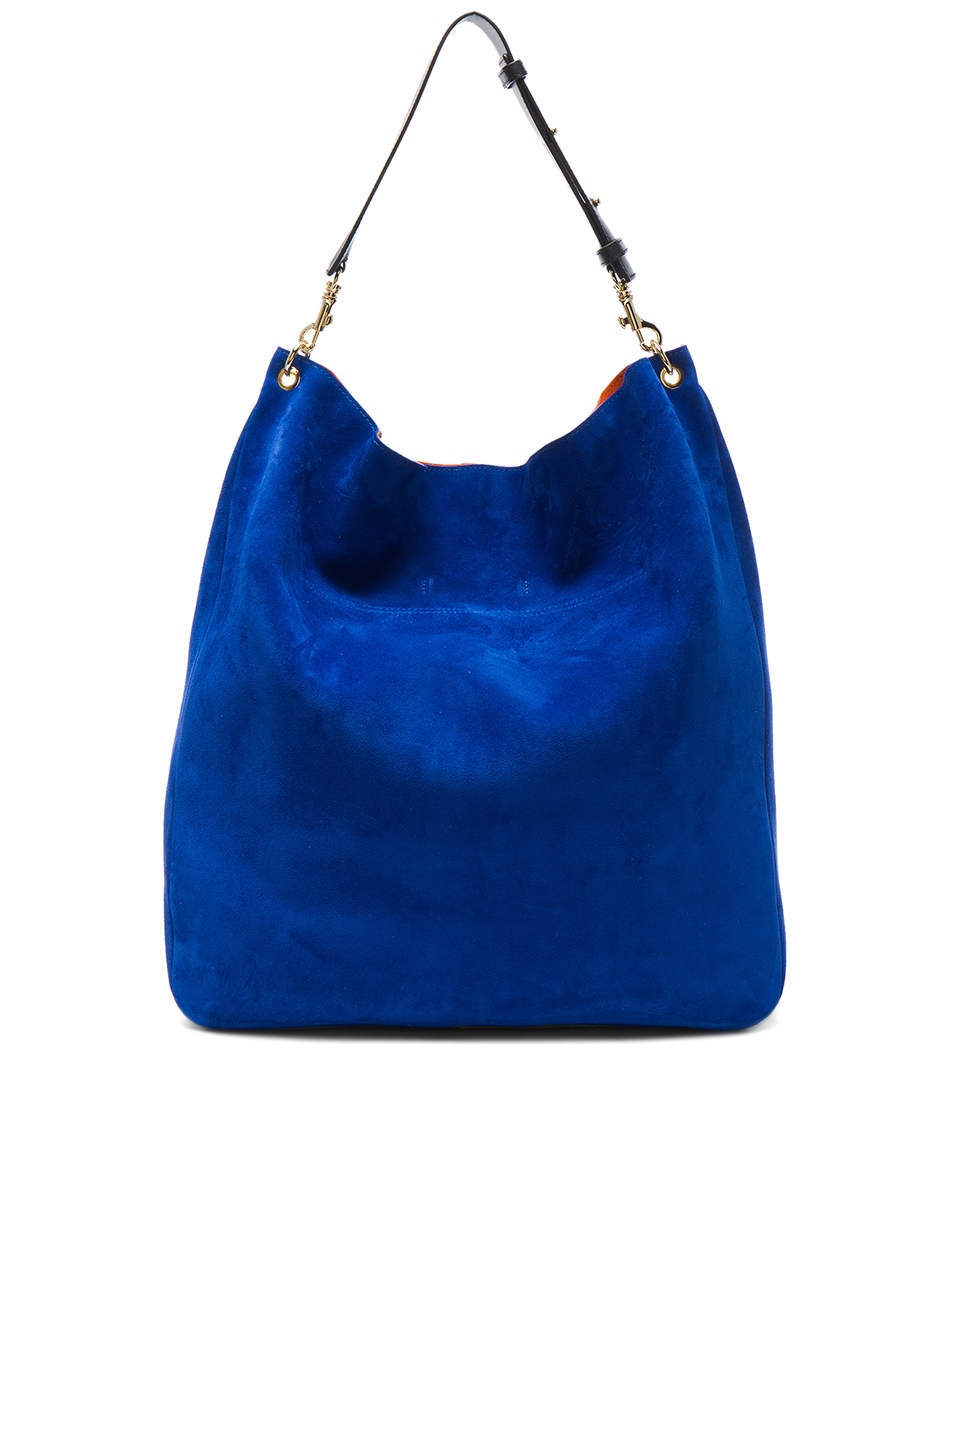 Image 2 of J.W. Anderson Large Pierce Hobo Bag in Royal Blue